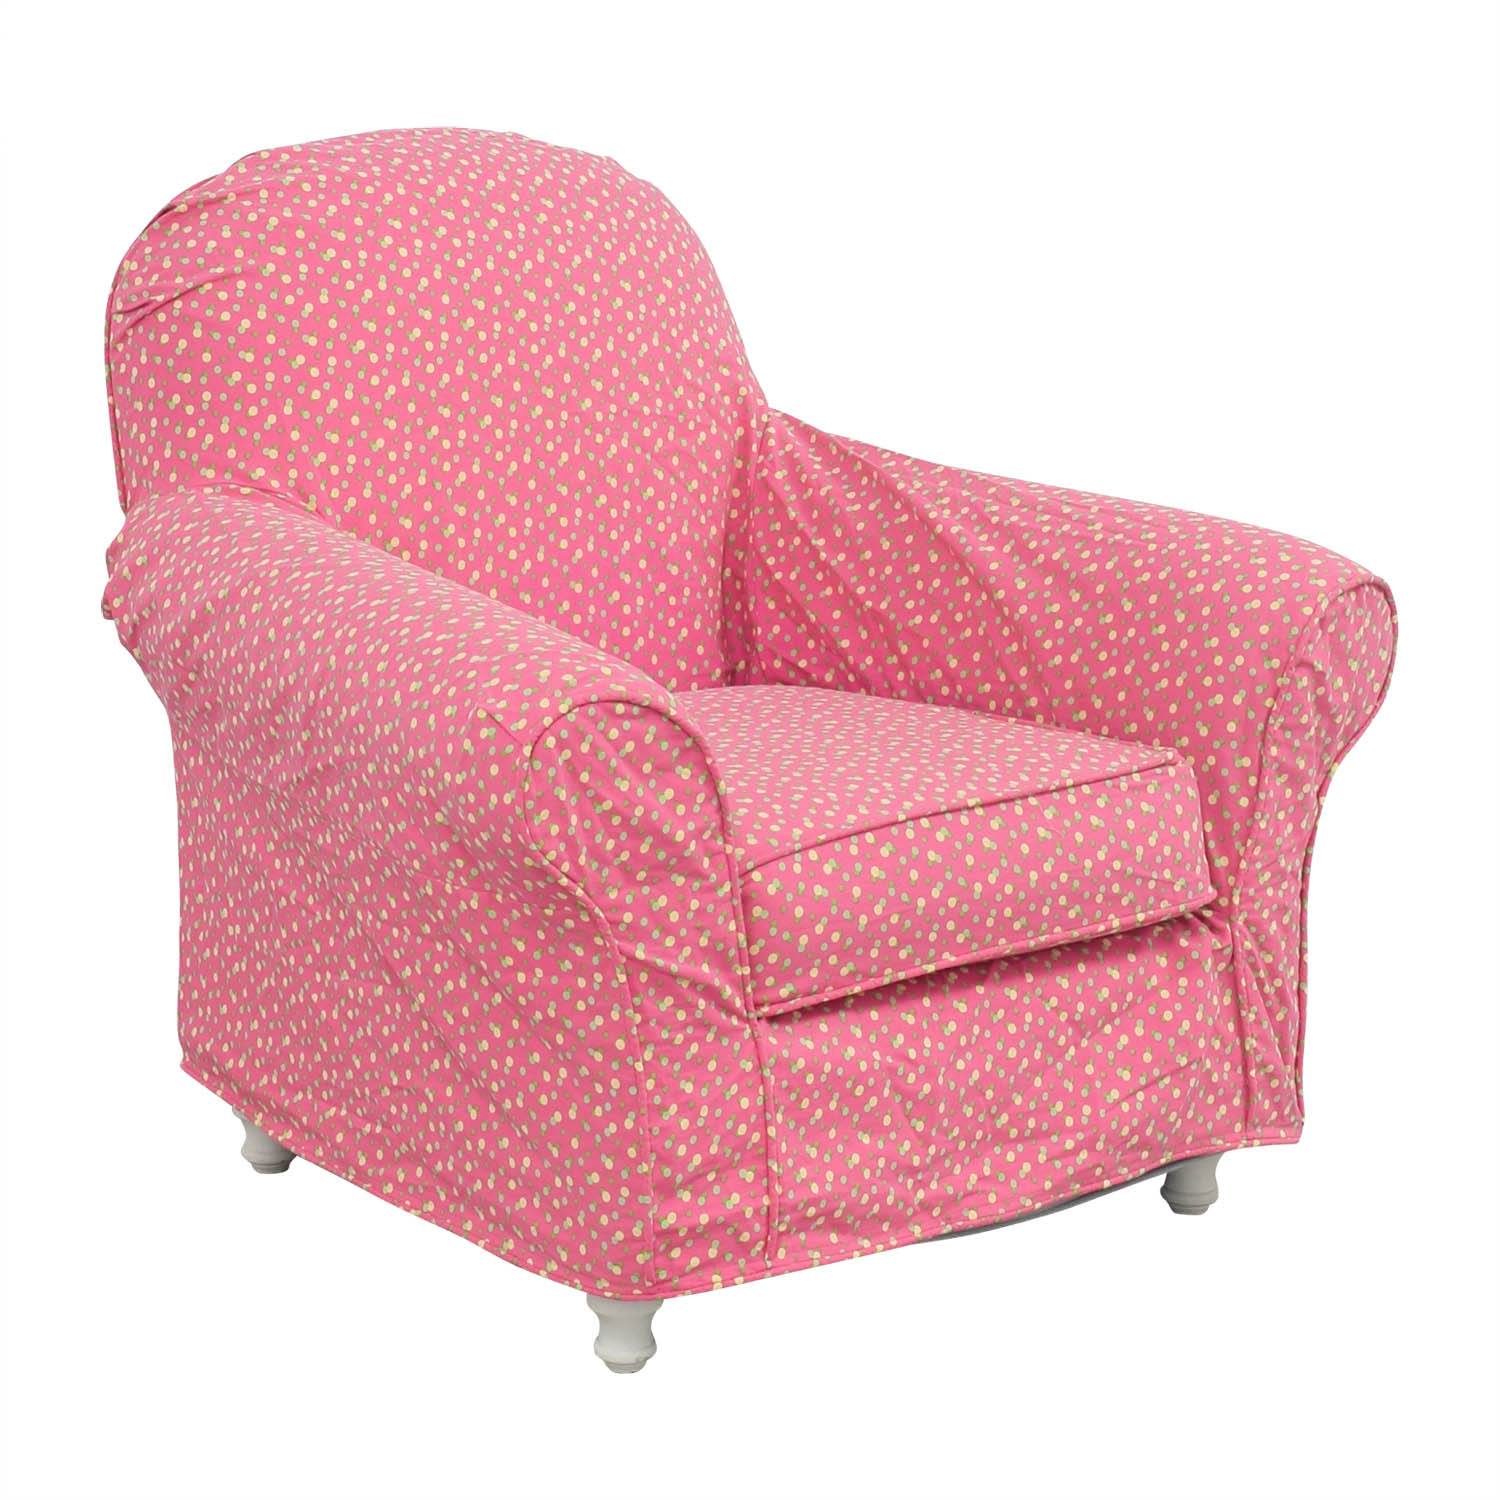 office chair covers to buy plycraft for sale 86 off pottery barn accent with two